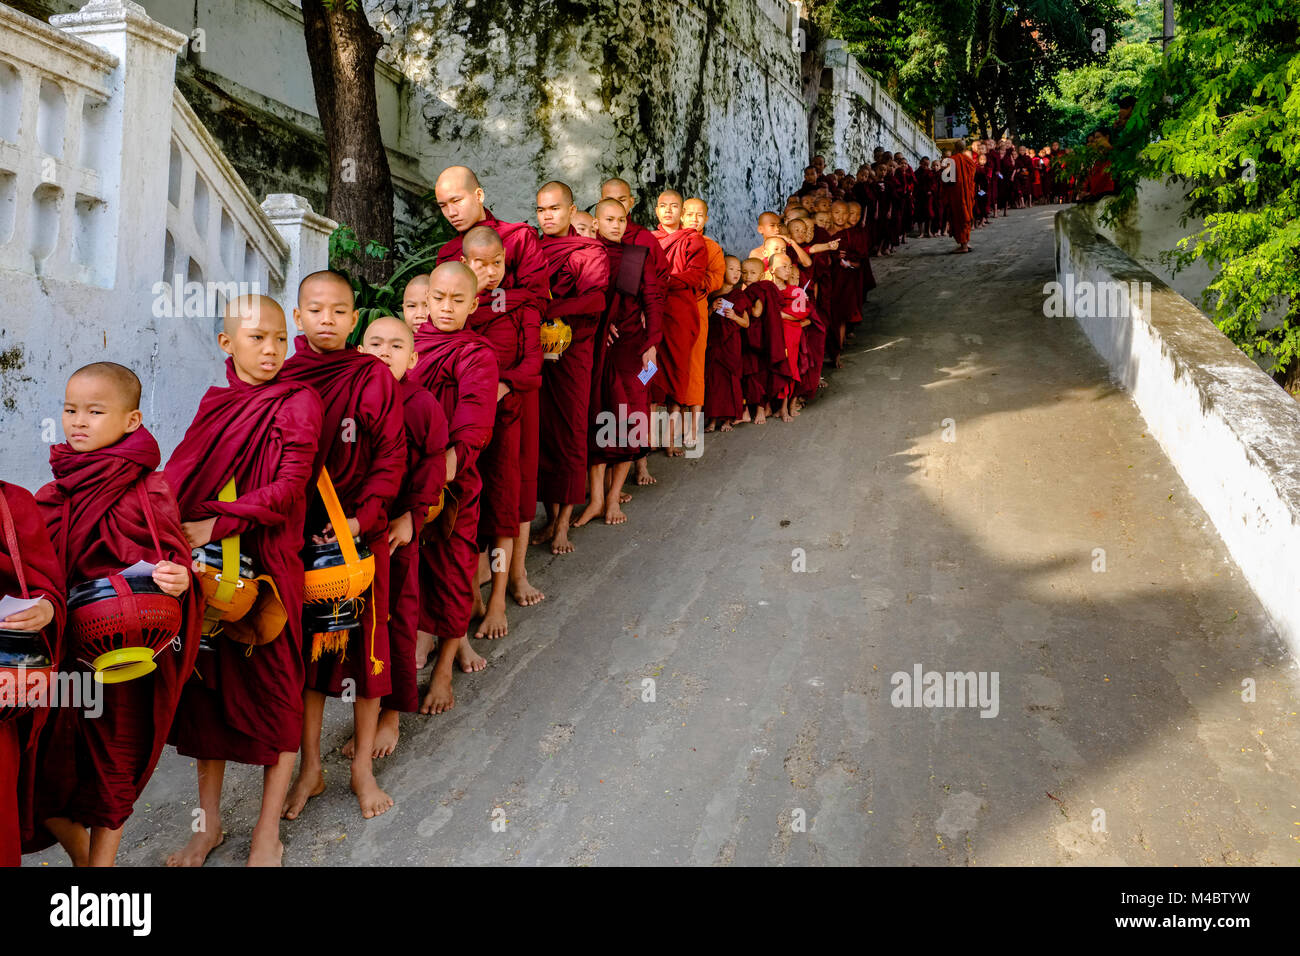 Buddhist monks are queuing in a long row to receive donations in a monastery - Stock Image